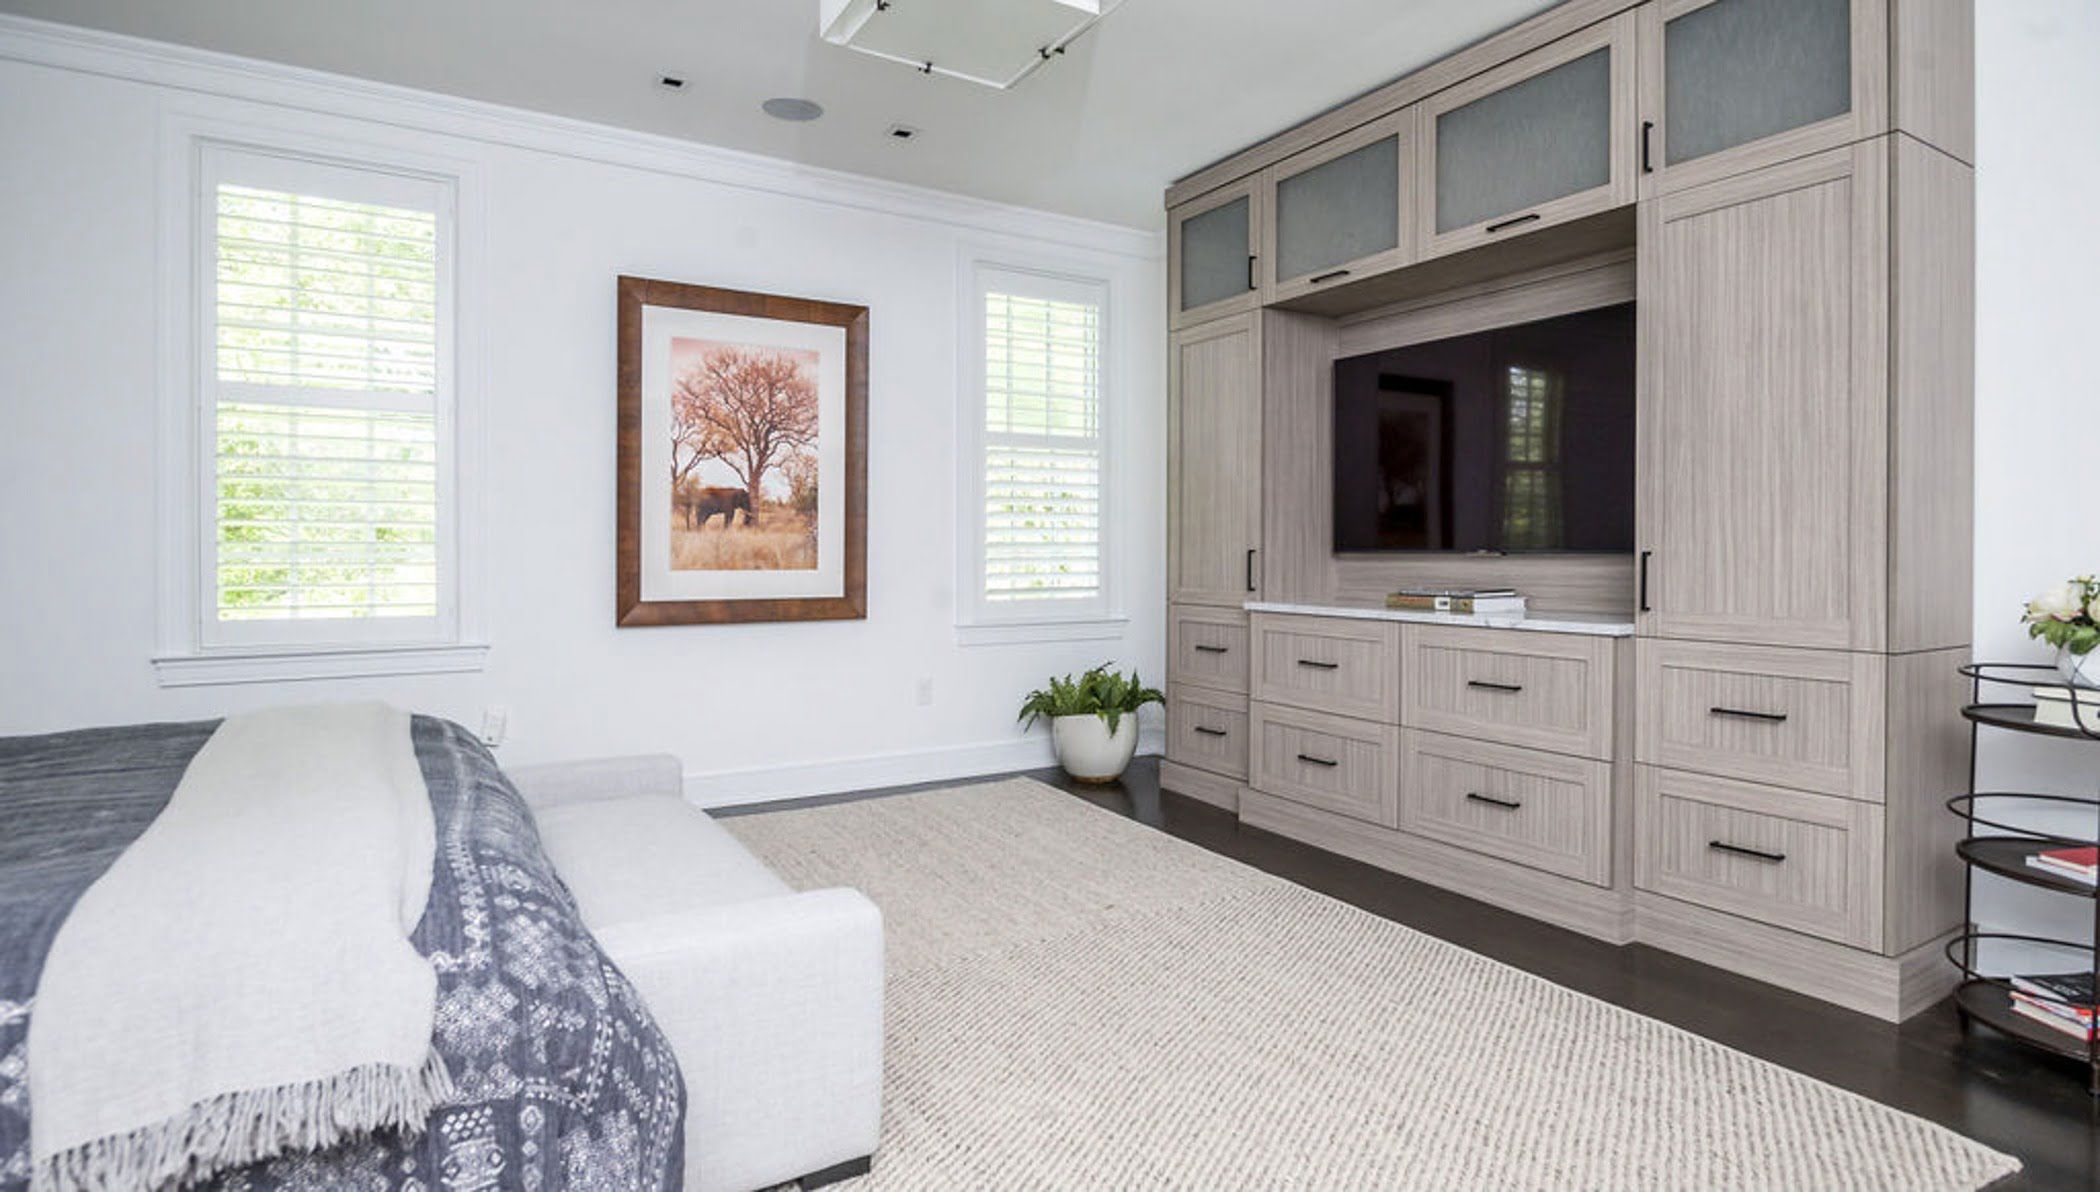 Modern bedroom remodel with a wall-to-wall media console in a light wood color with black drawer pulls.